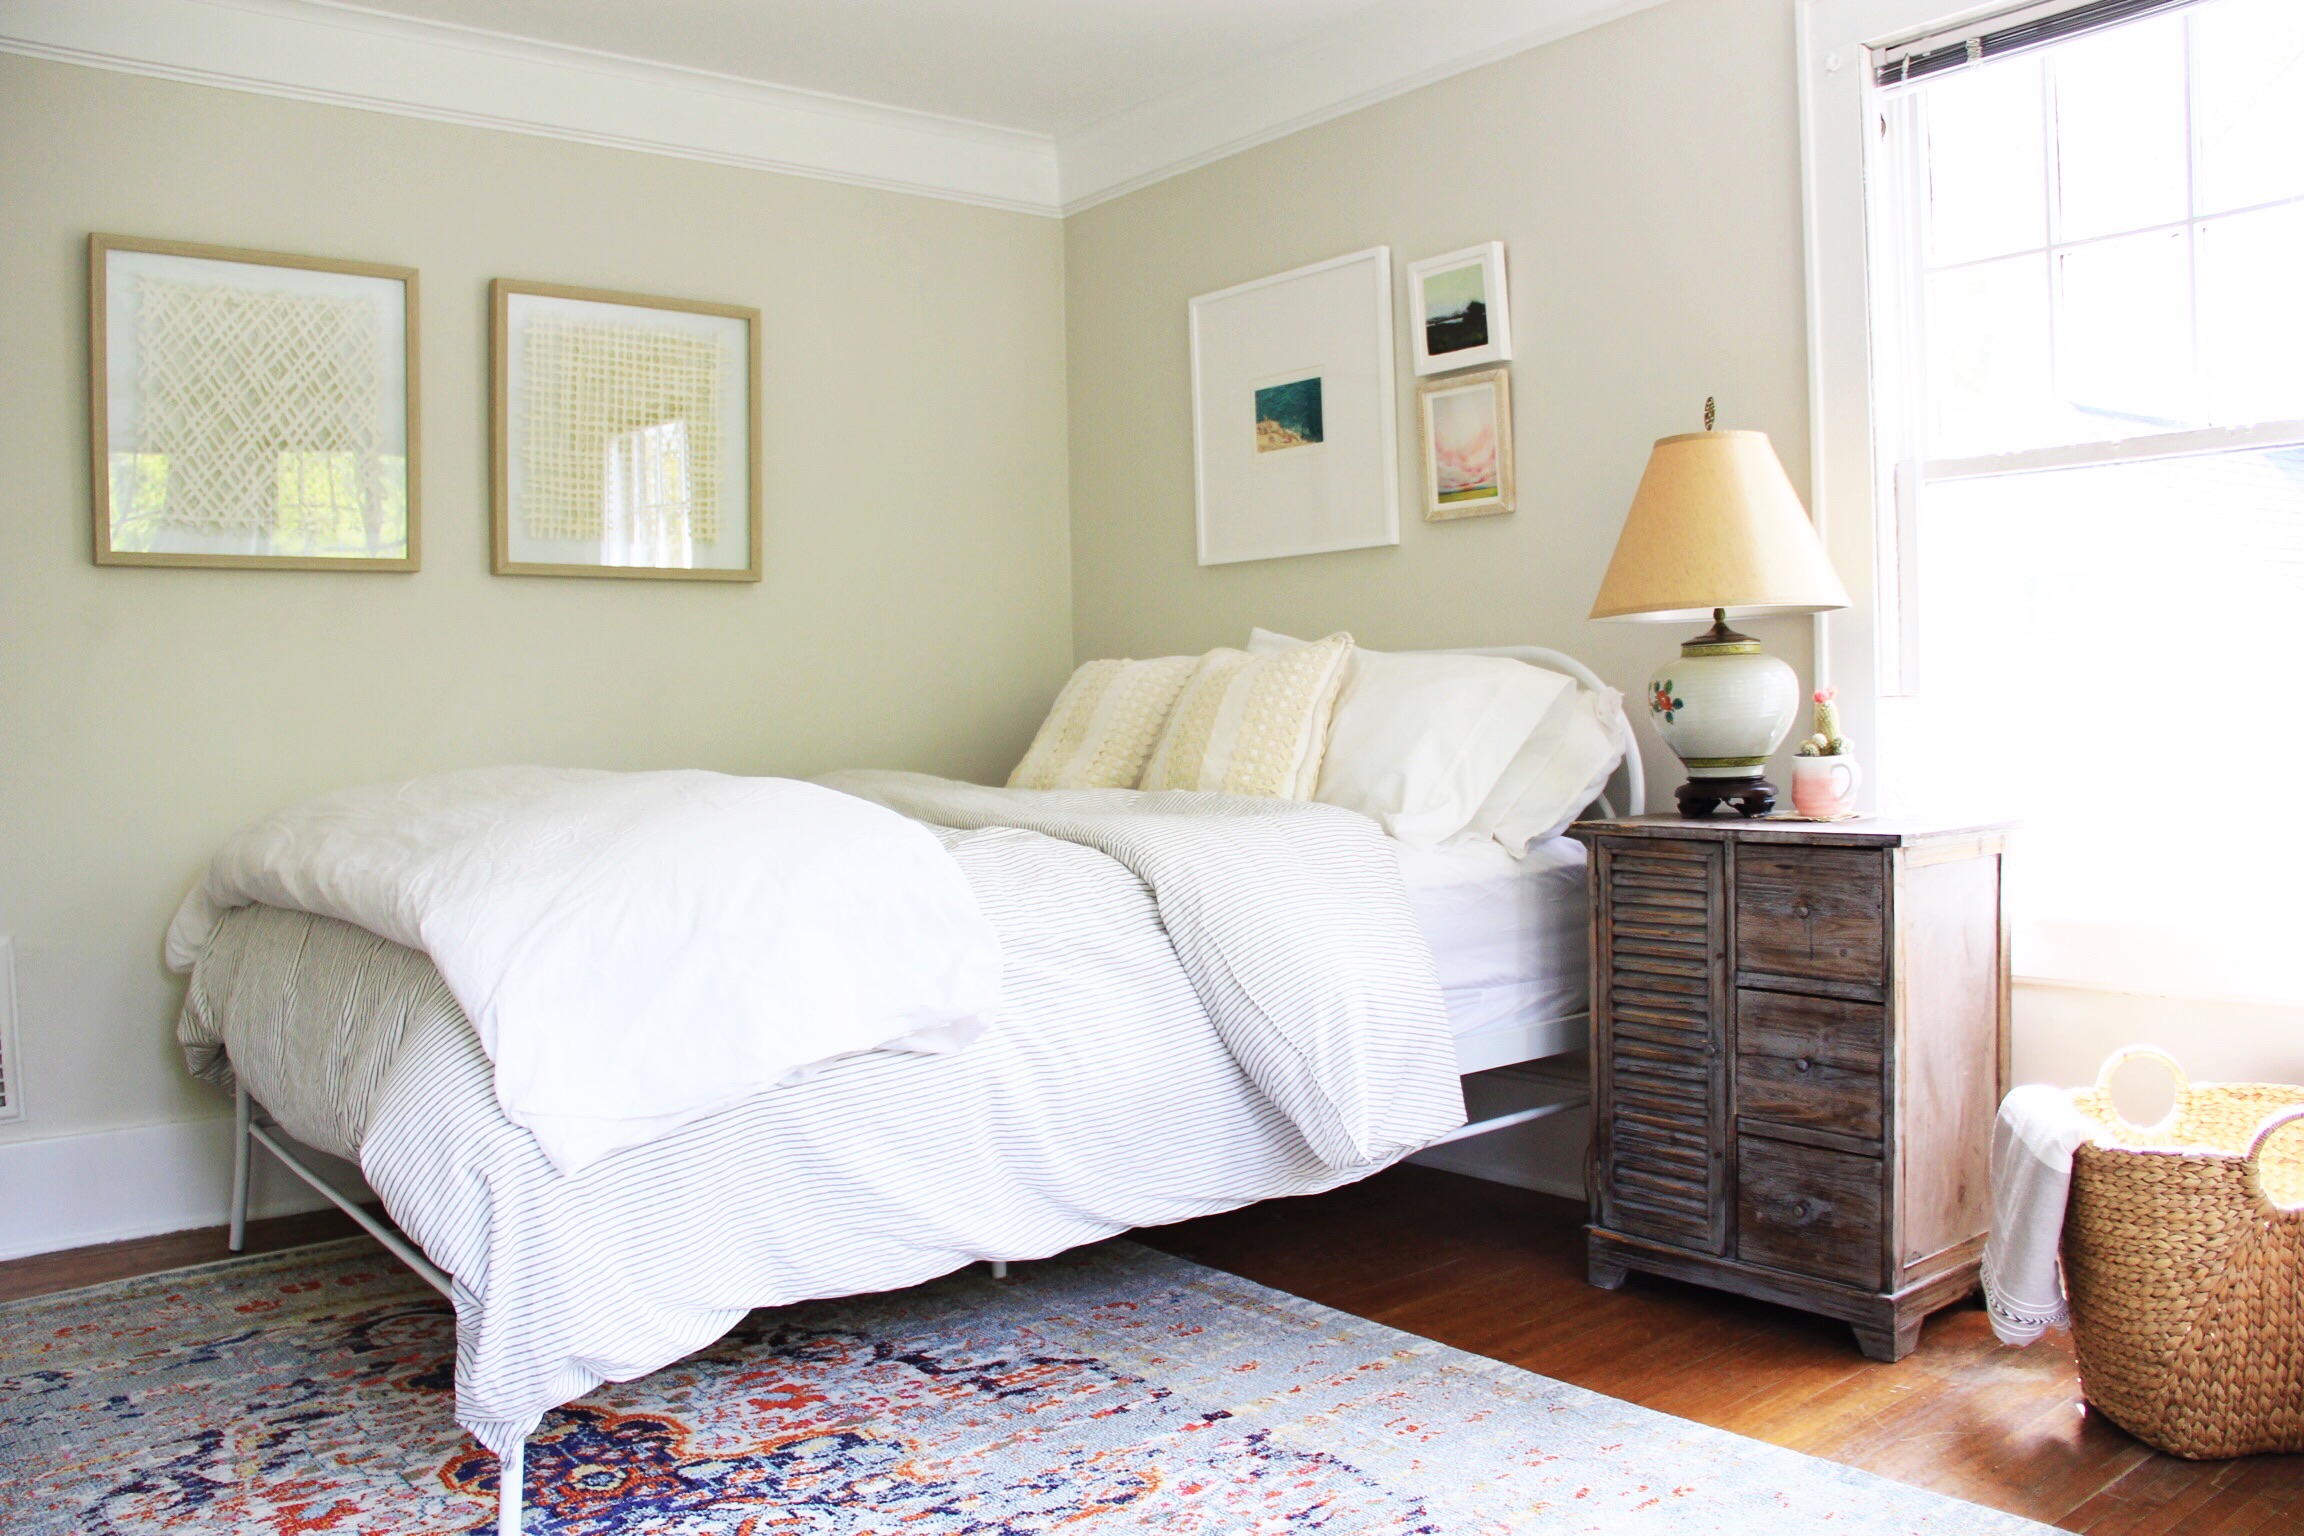 A warm, Bohemian guest bedroom